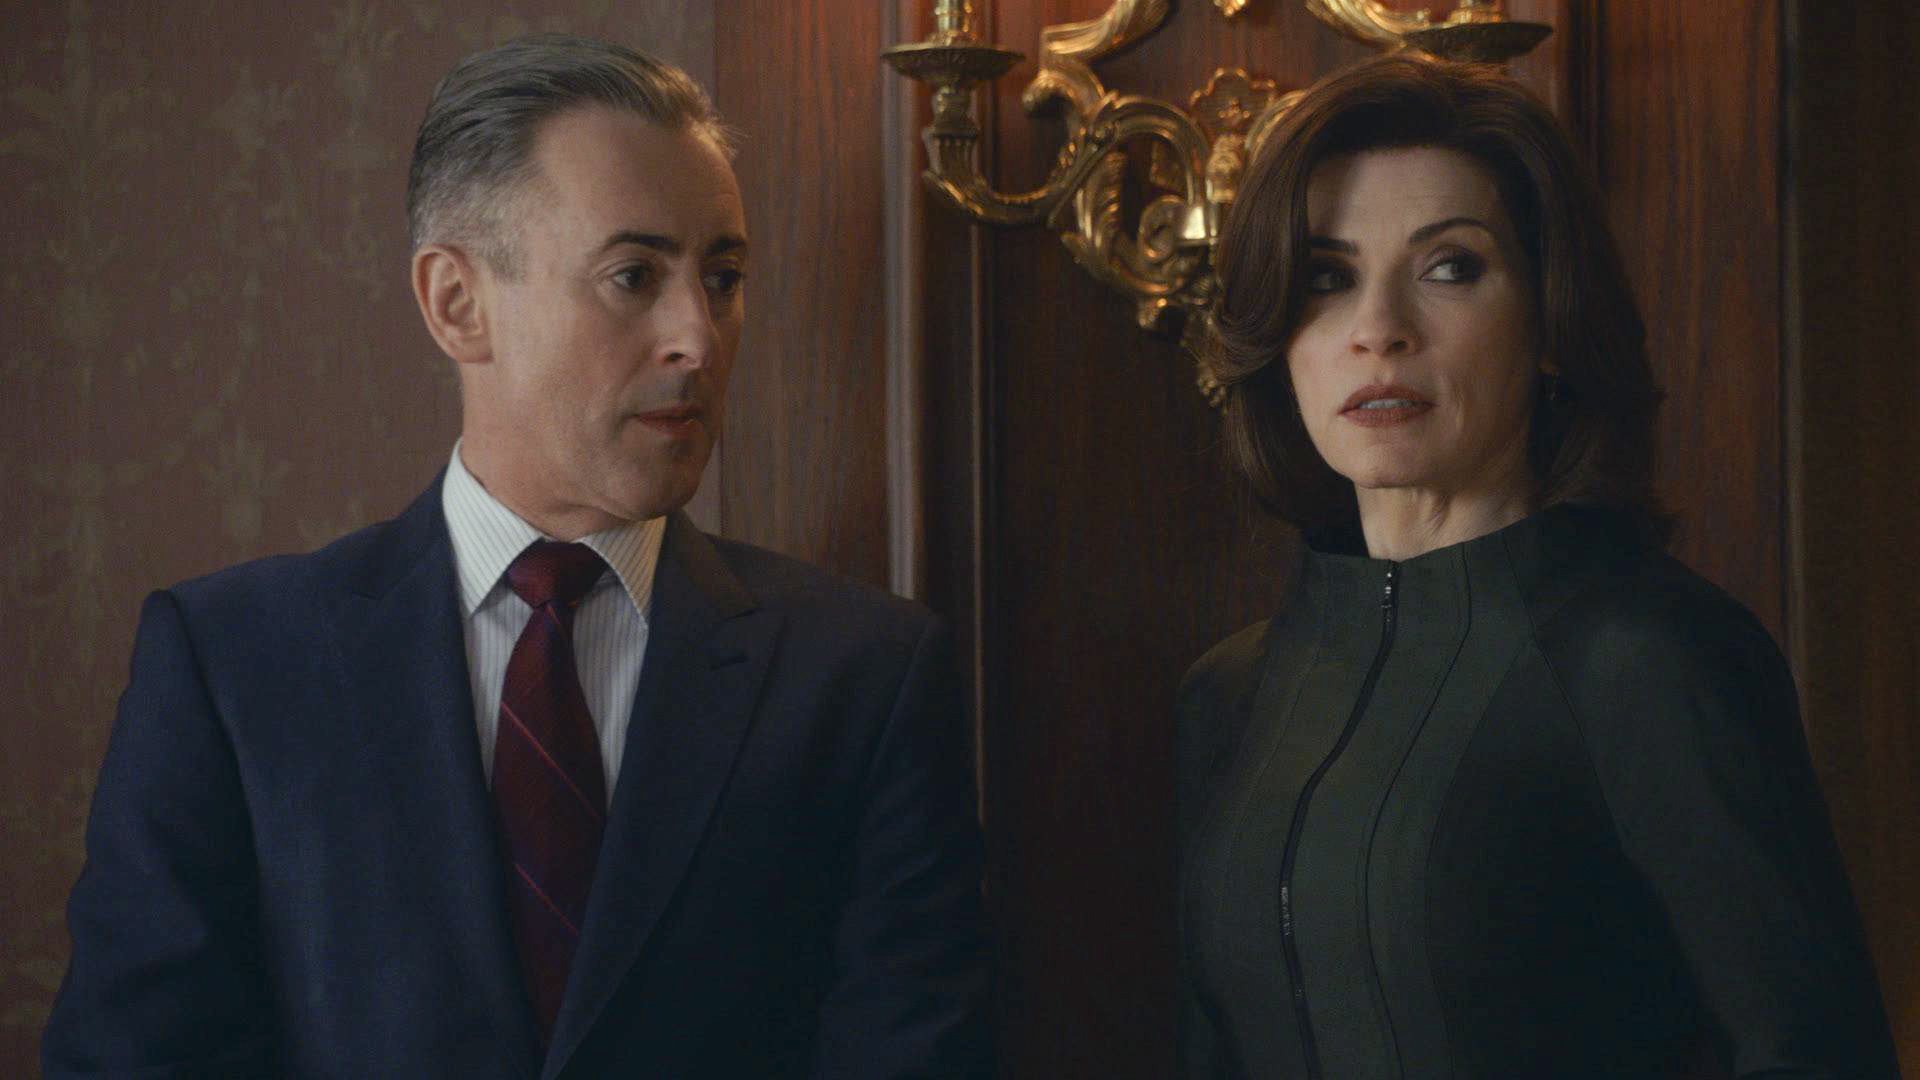 12. While At a Fundraiser as the Governor's Wife, Alicia Has Her Armor On